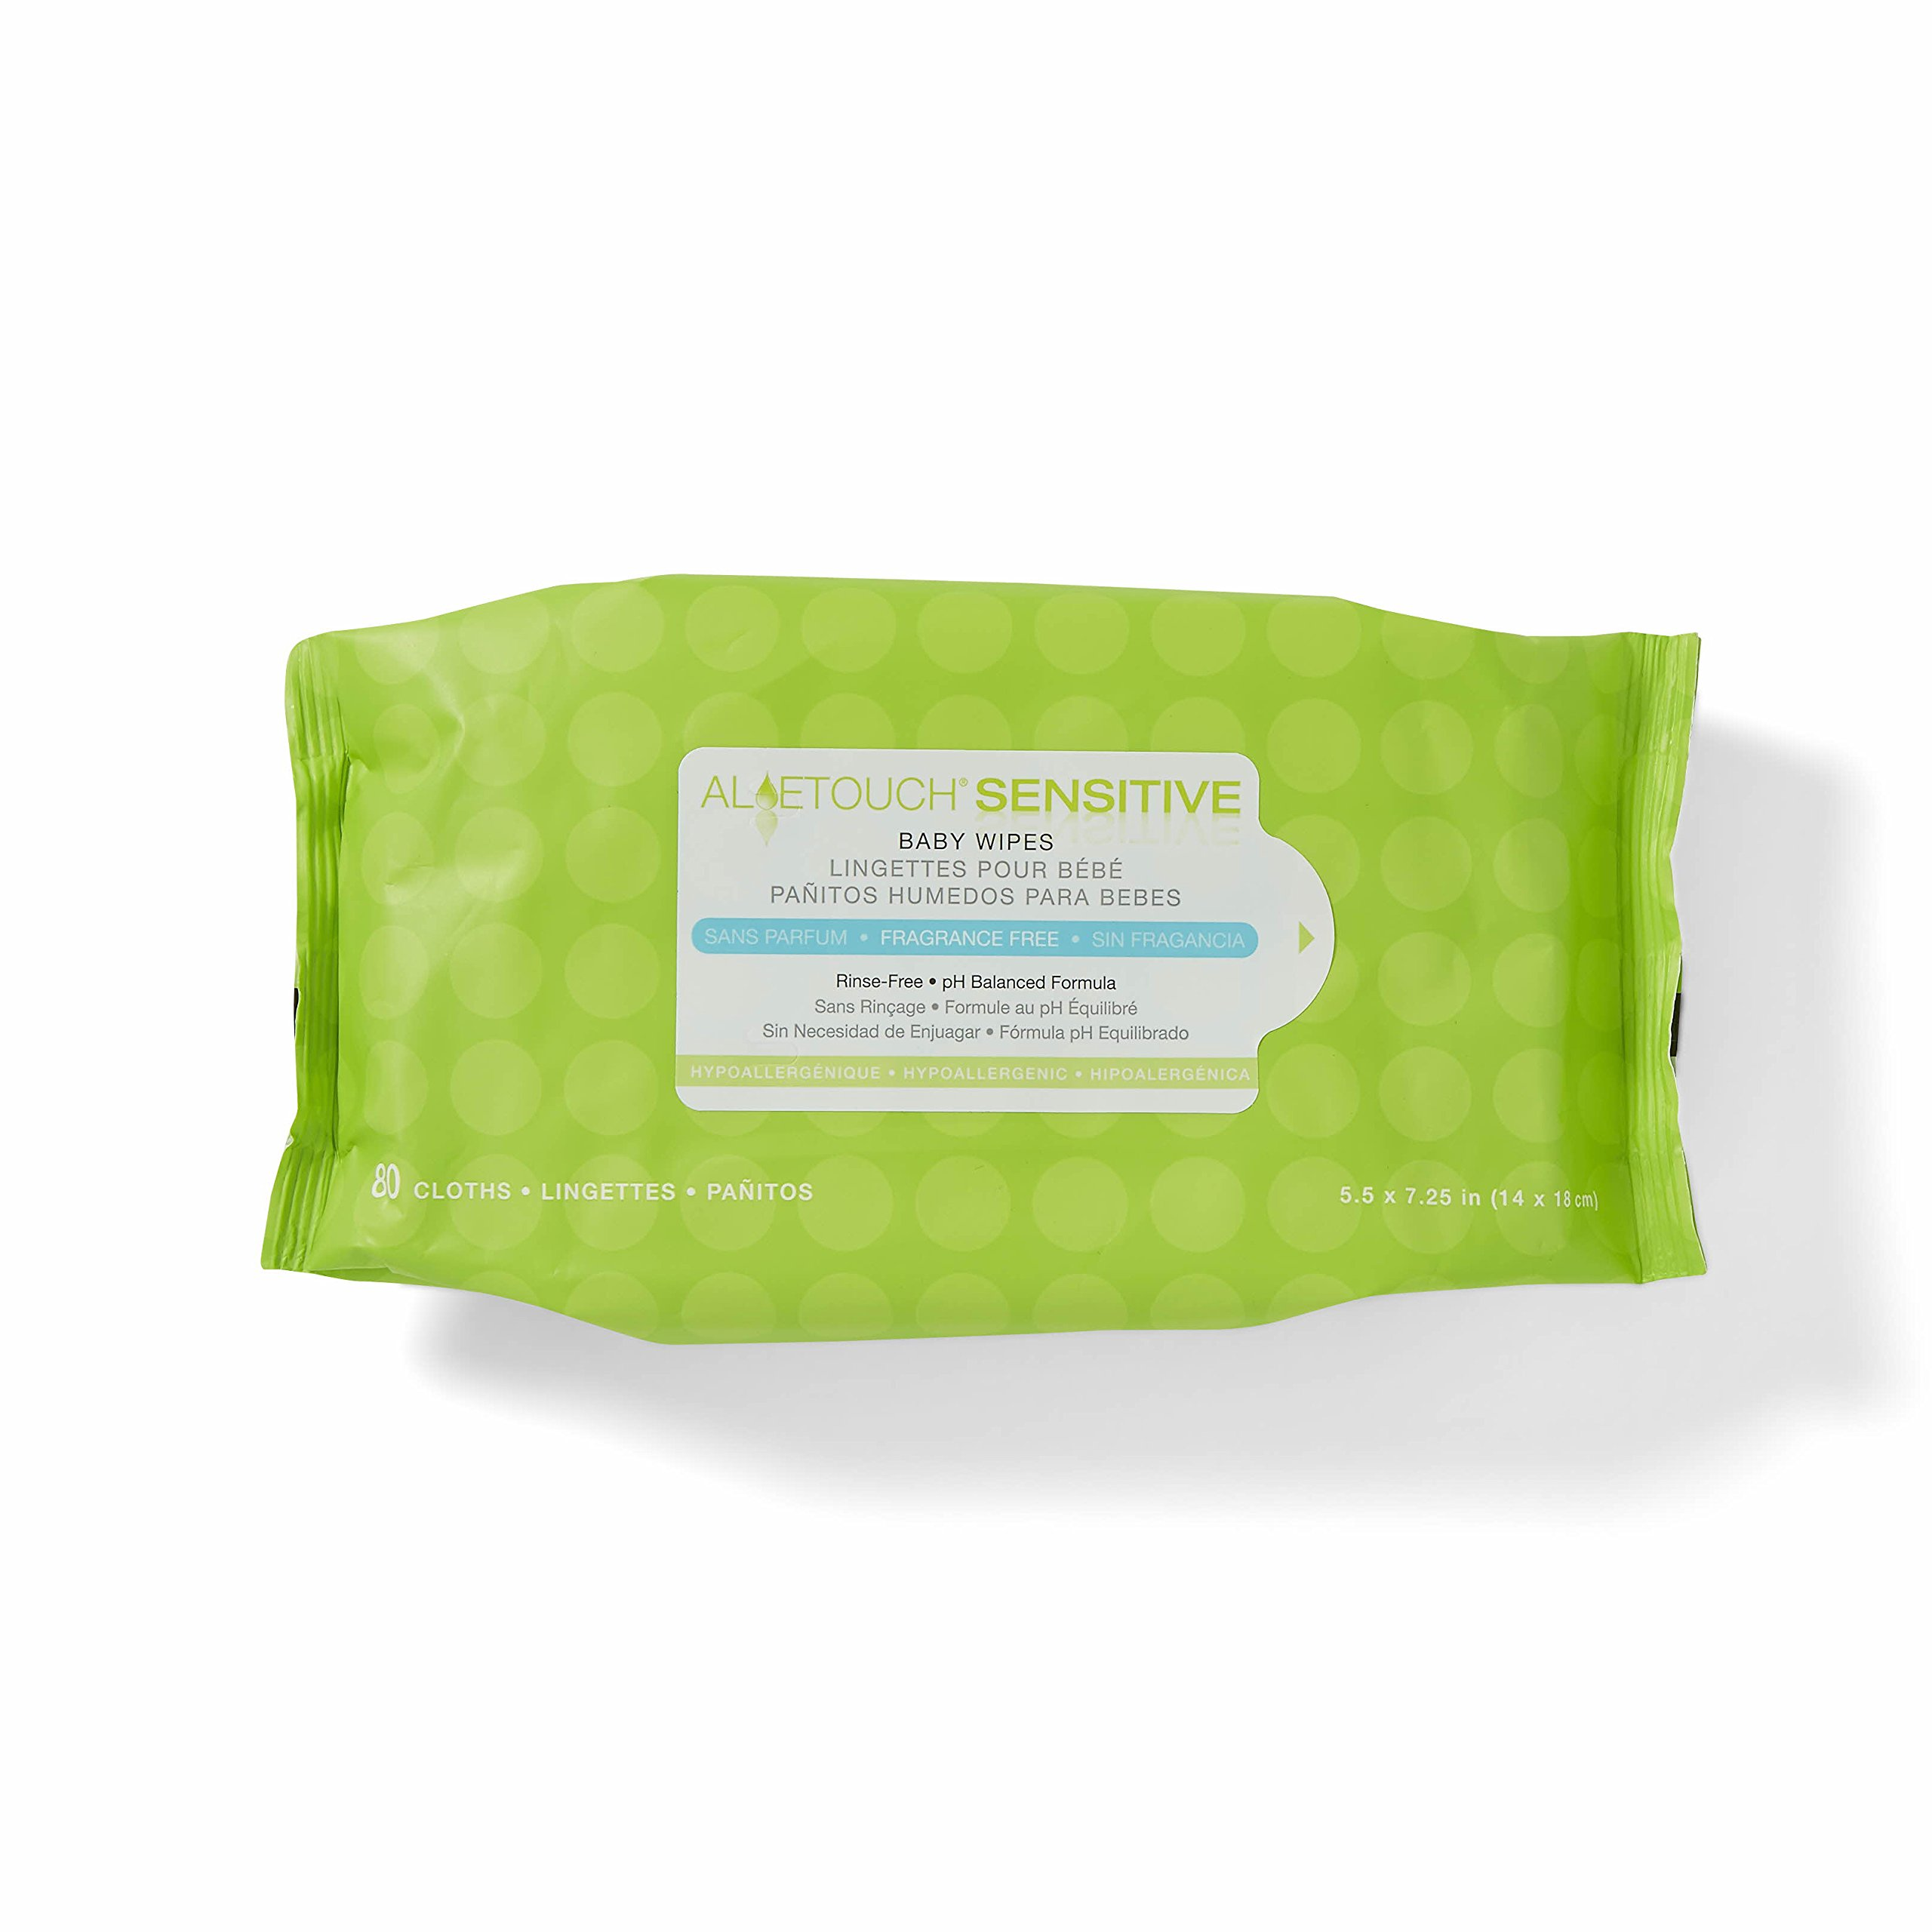 Medline AloeTouch Sensitive Baby Wipes, Cleansing Cloths, 1920 Count, Unscented, 5.5 x 6 inch Baby Wipes by Medline